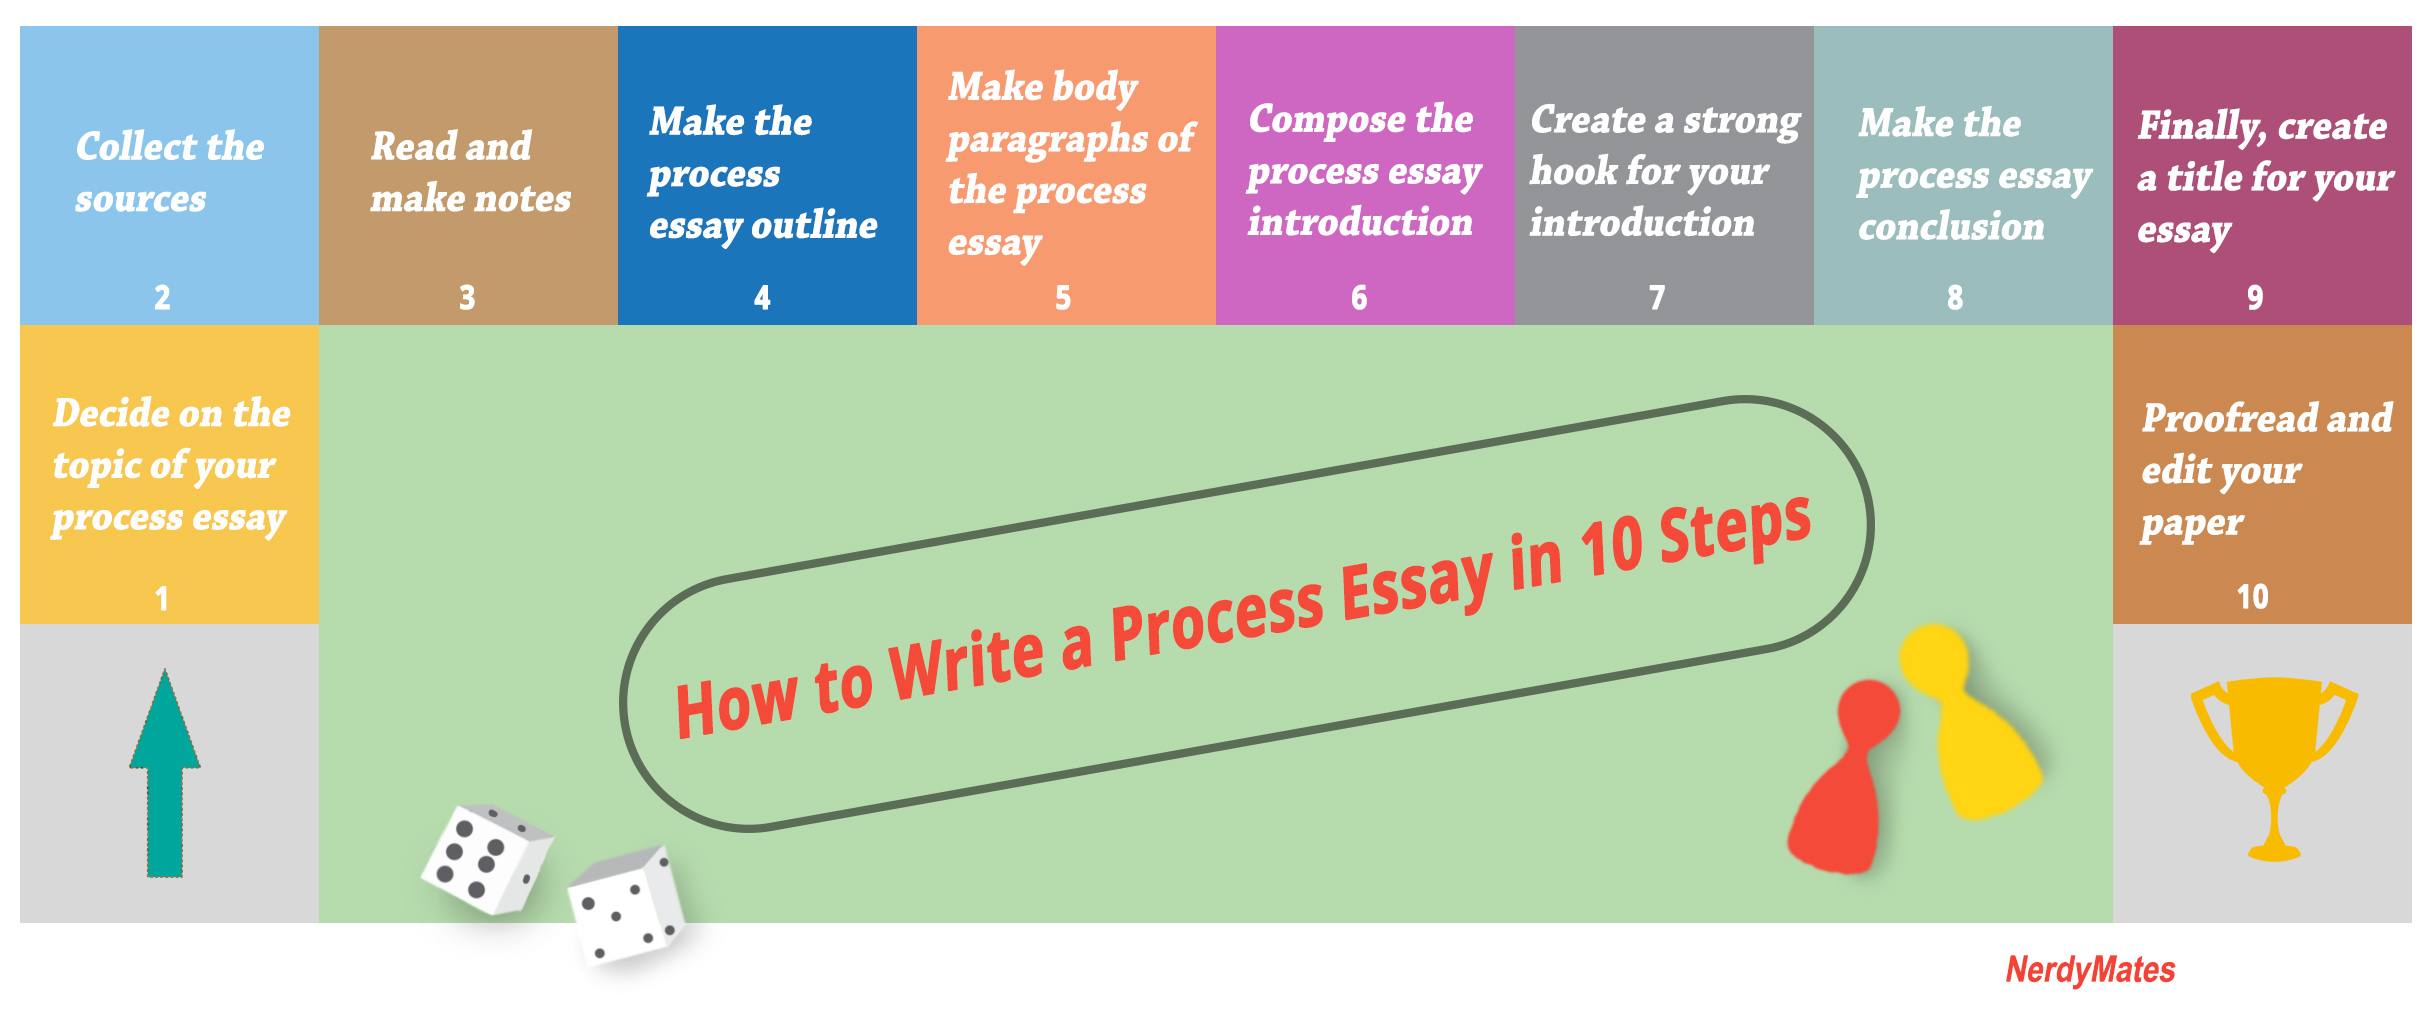 interview process essay